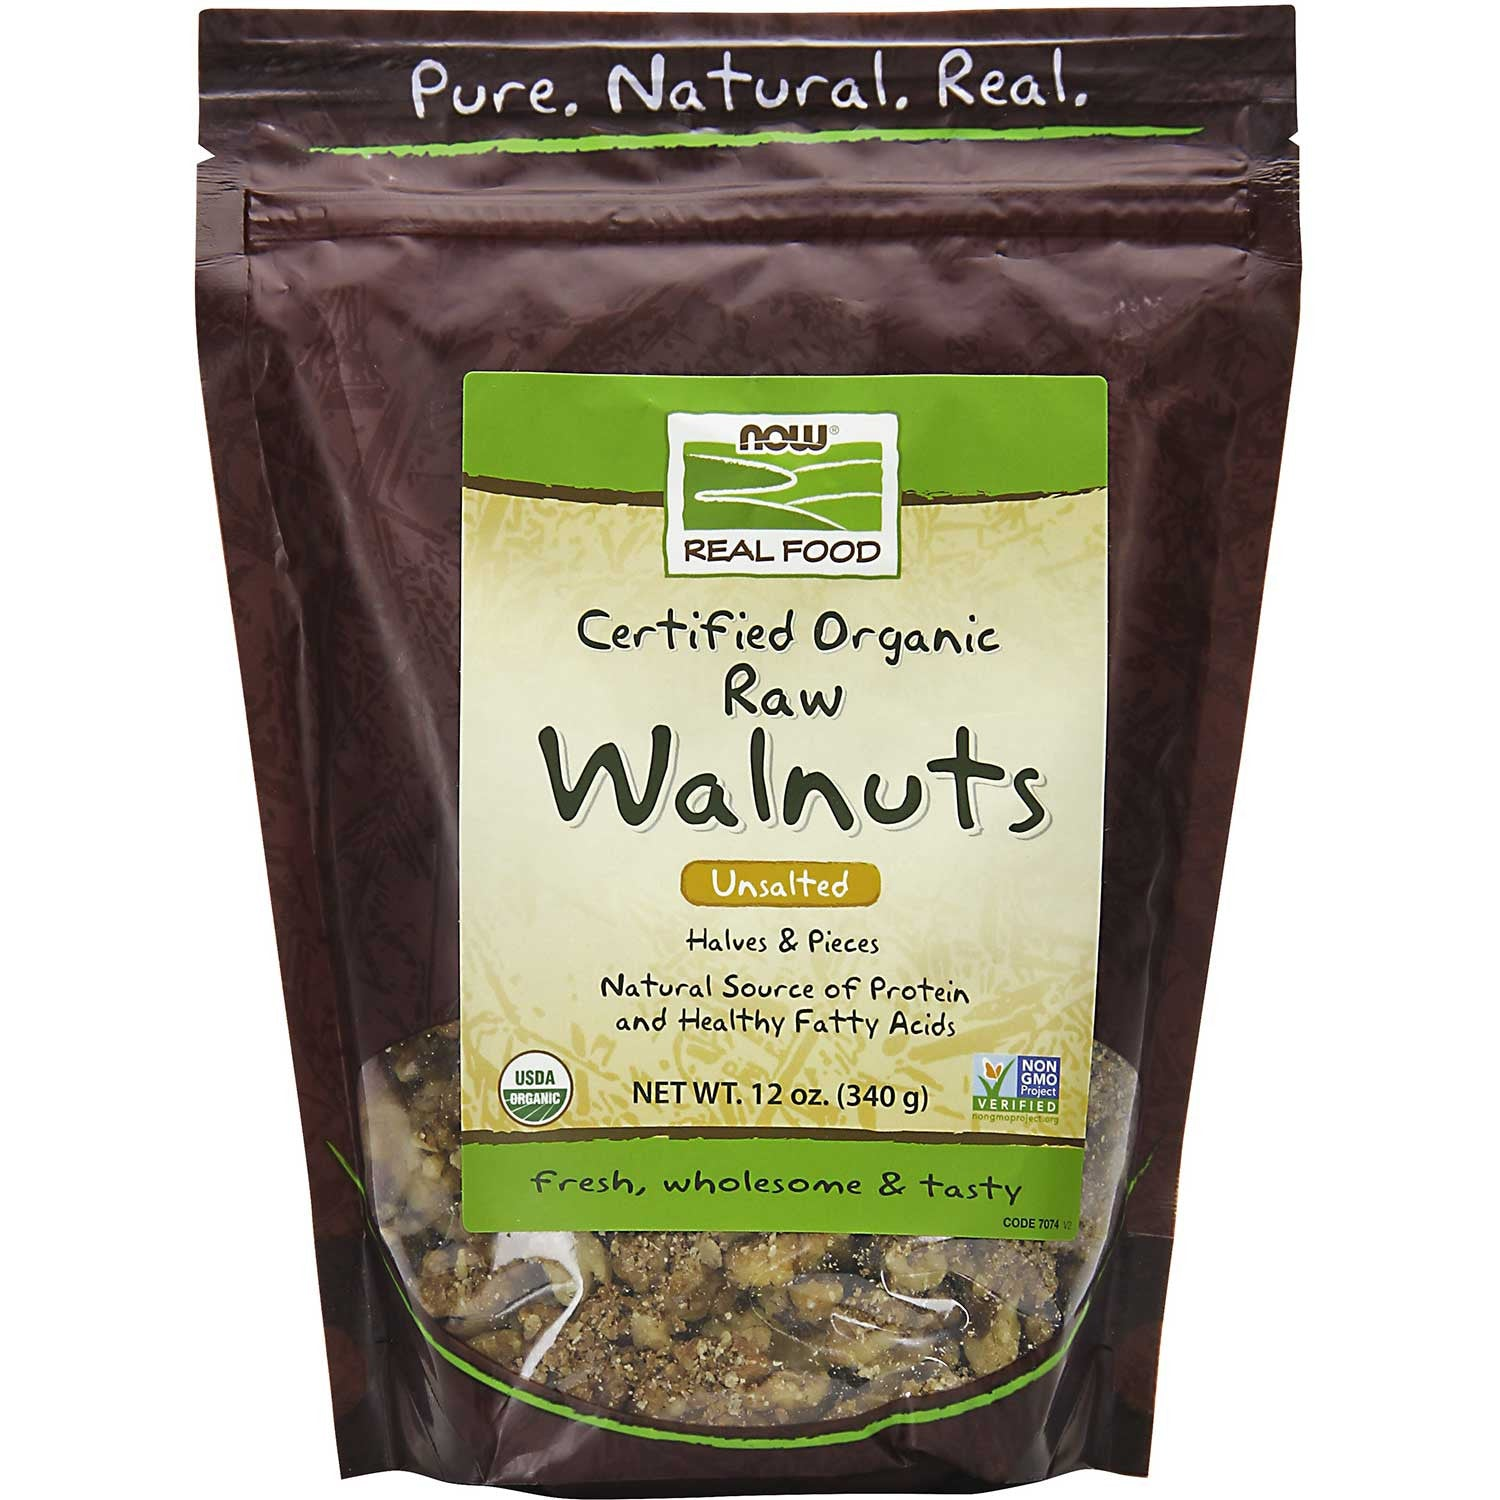 NOW Real Food Walnuts - Raw, Unsalted, Halves & Pieces, Organic, 340 g.-NaturesWisdom